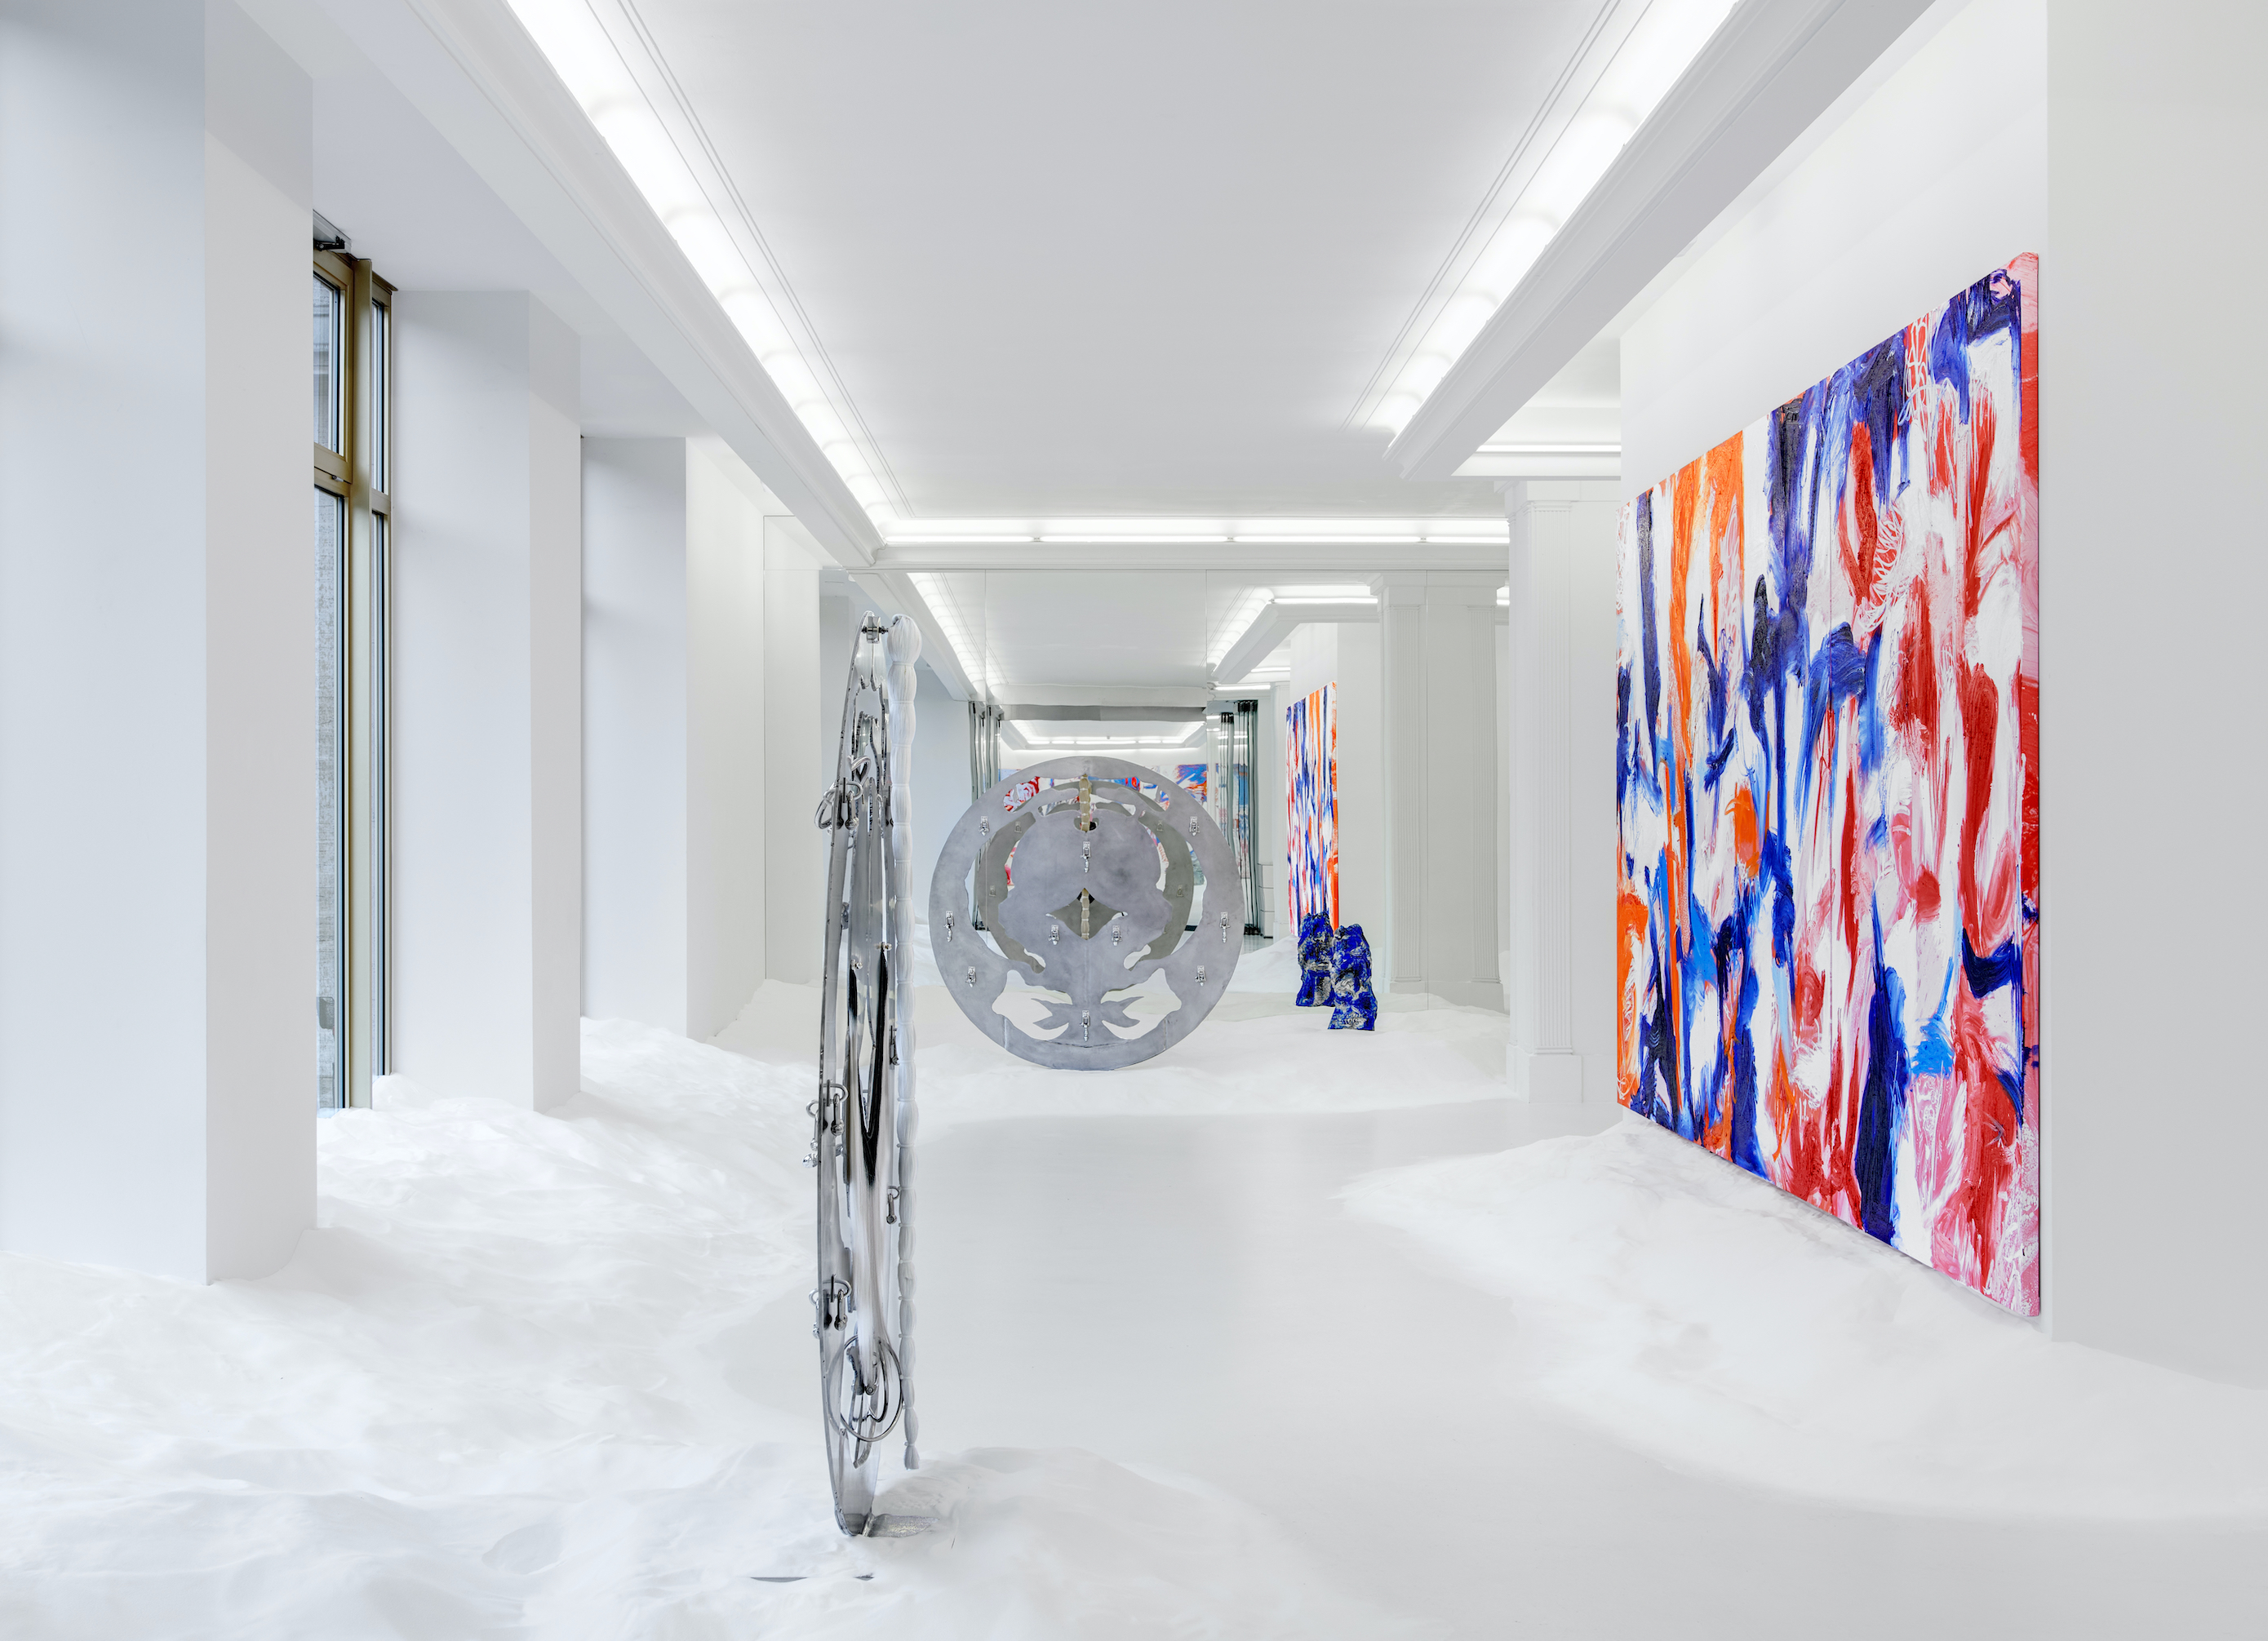 Donna HUANCA, OBSIDIAN MIRROR, September 1 – October 3, 2021, Peres Projects, Berlin, Courtesy Peres Projects, Berlin, Photographed by: Matthias Kolb